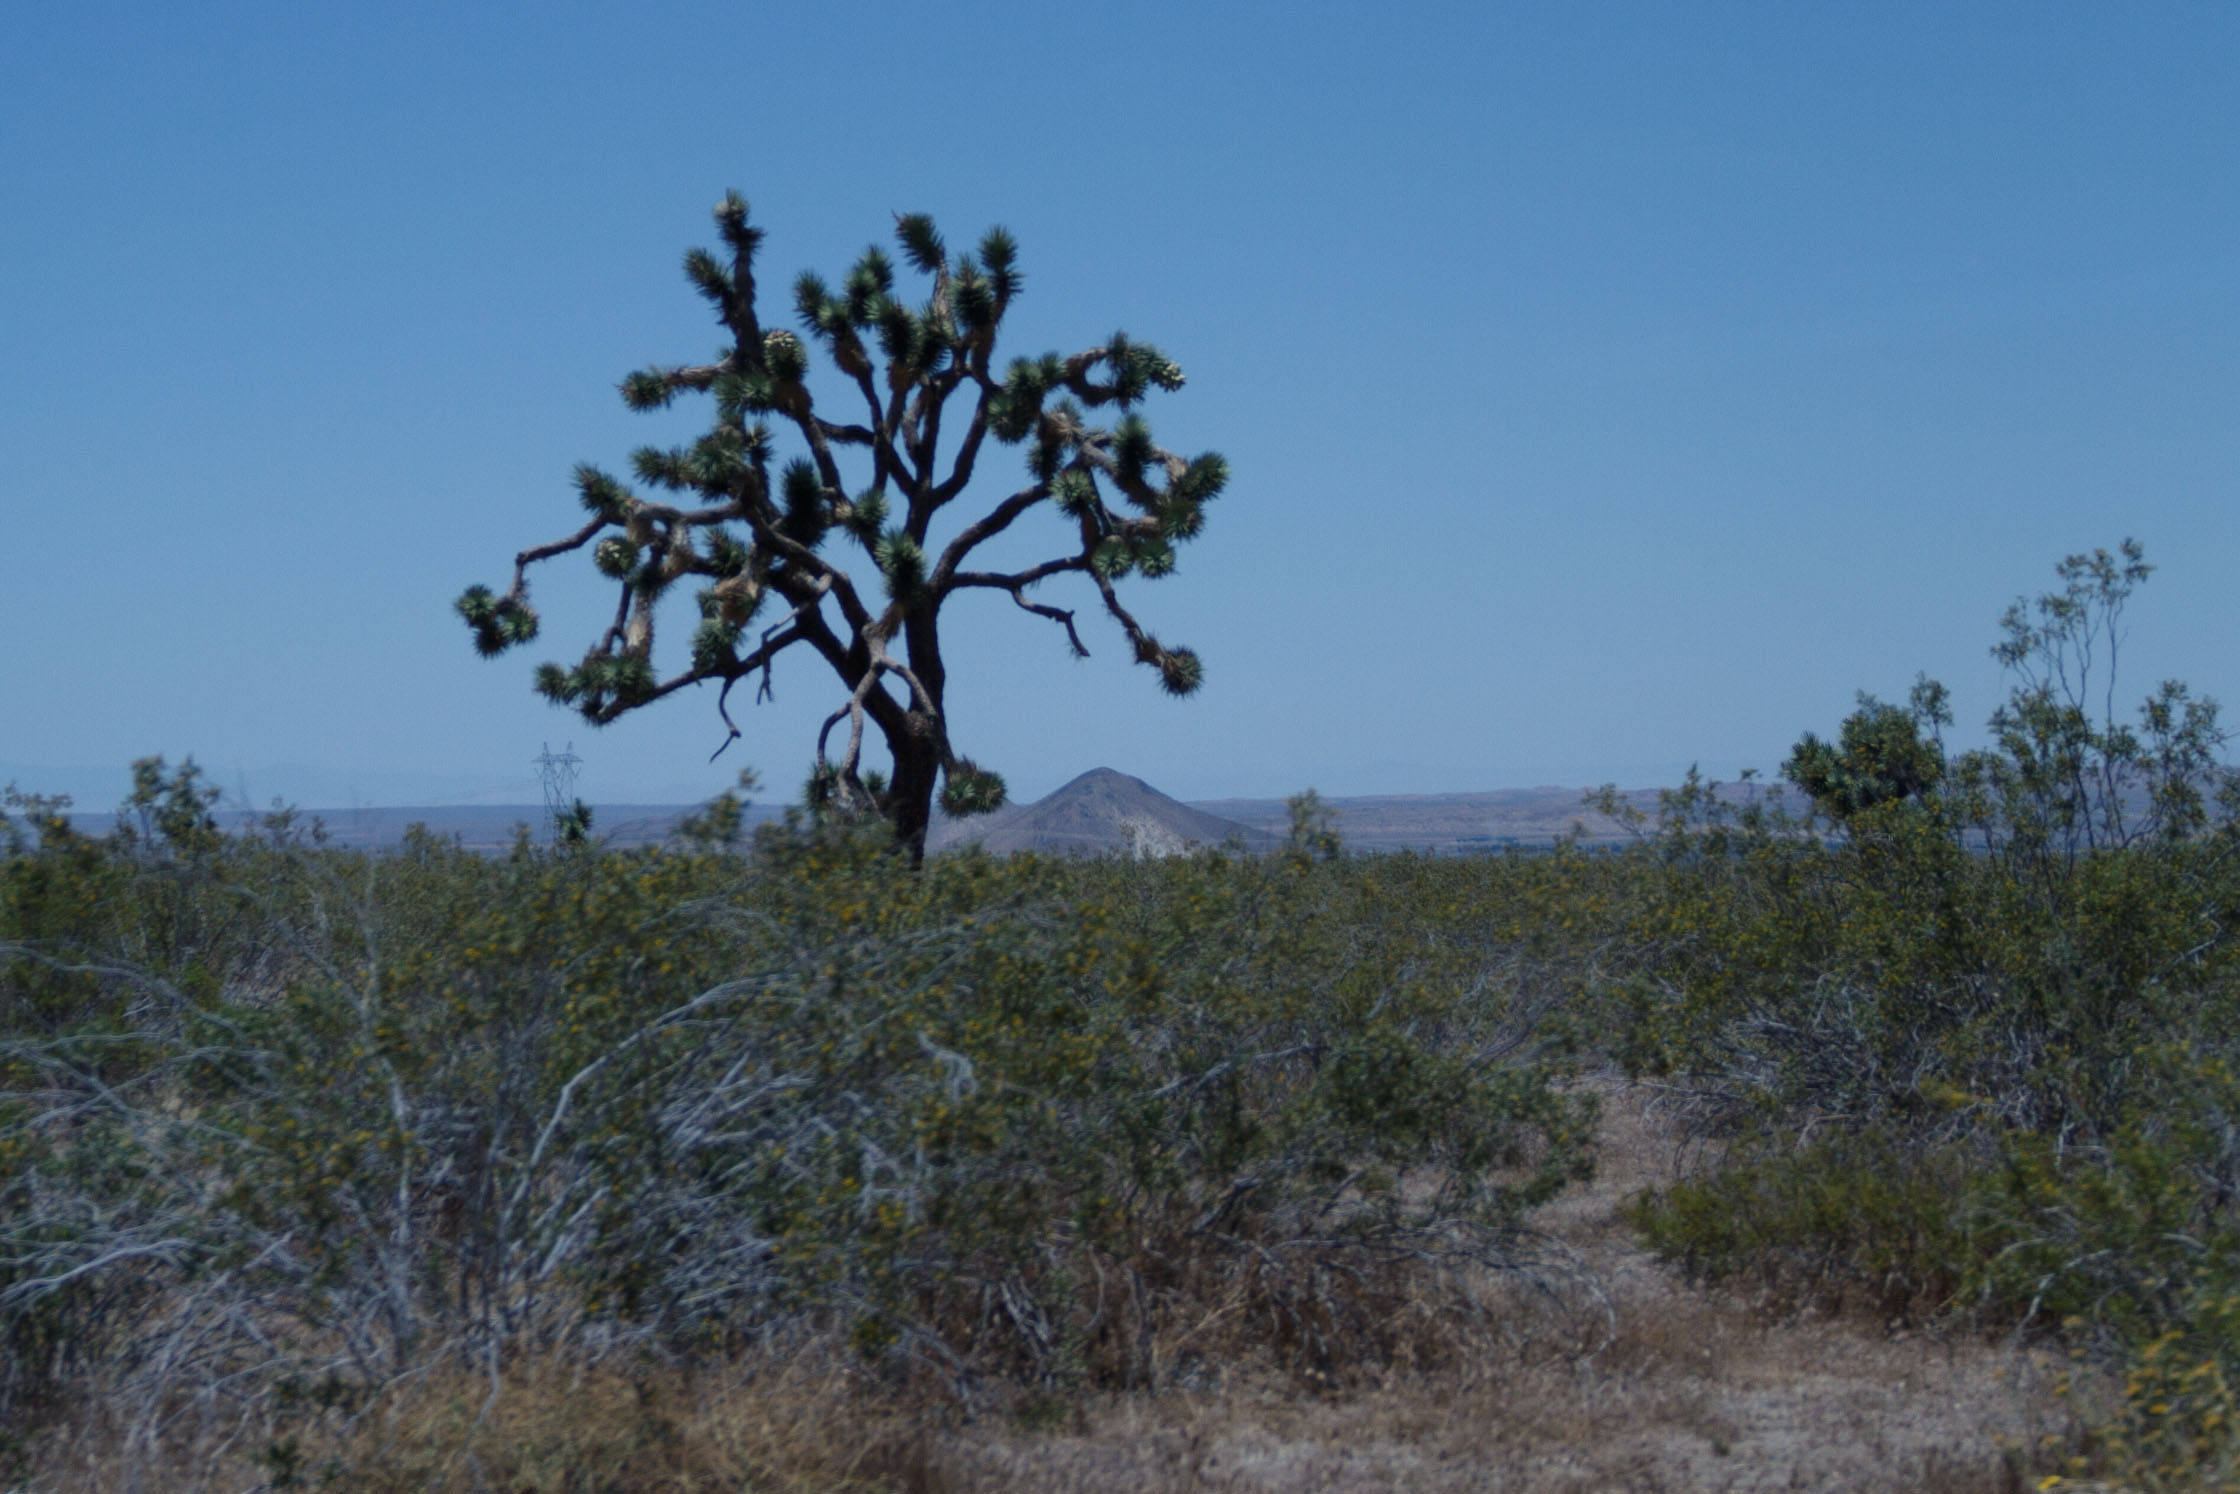 One of many Joshua trees